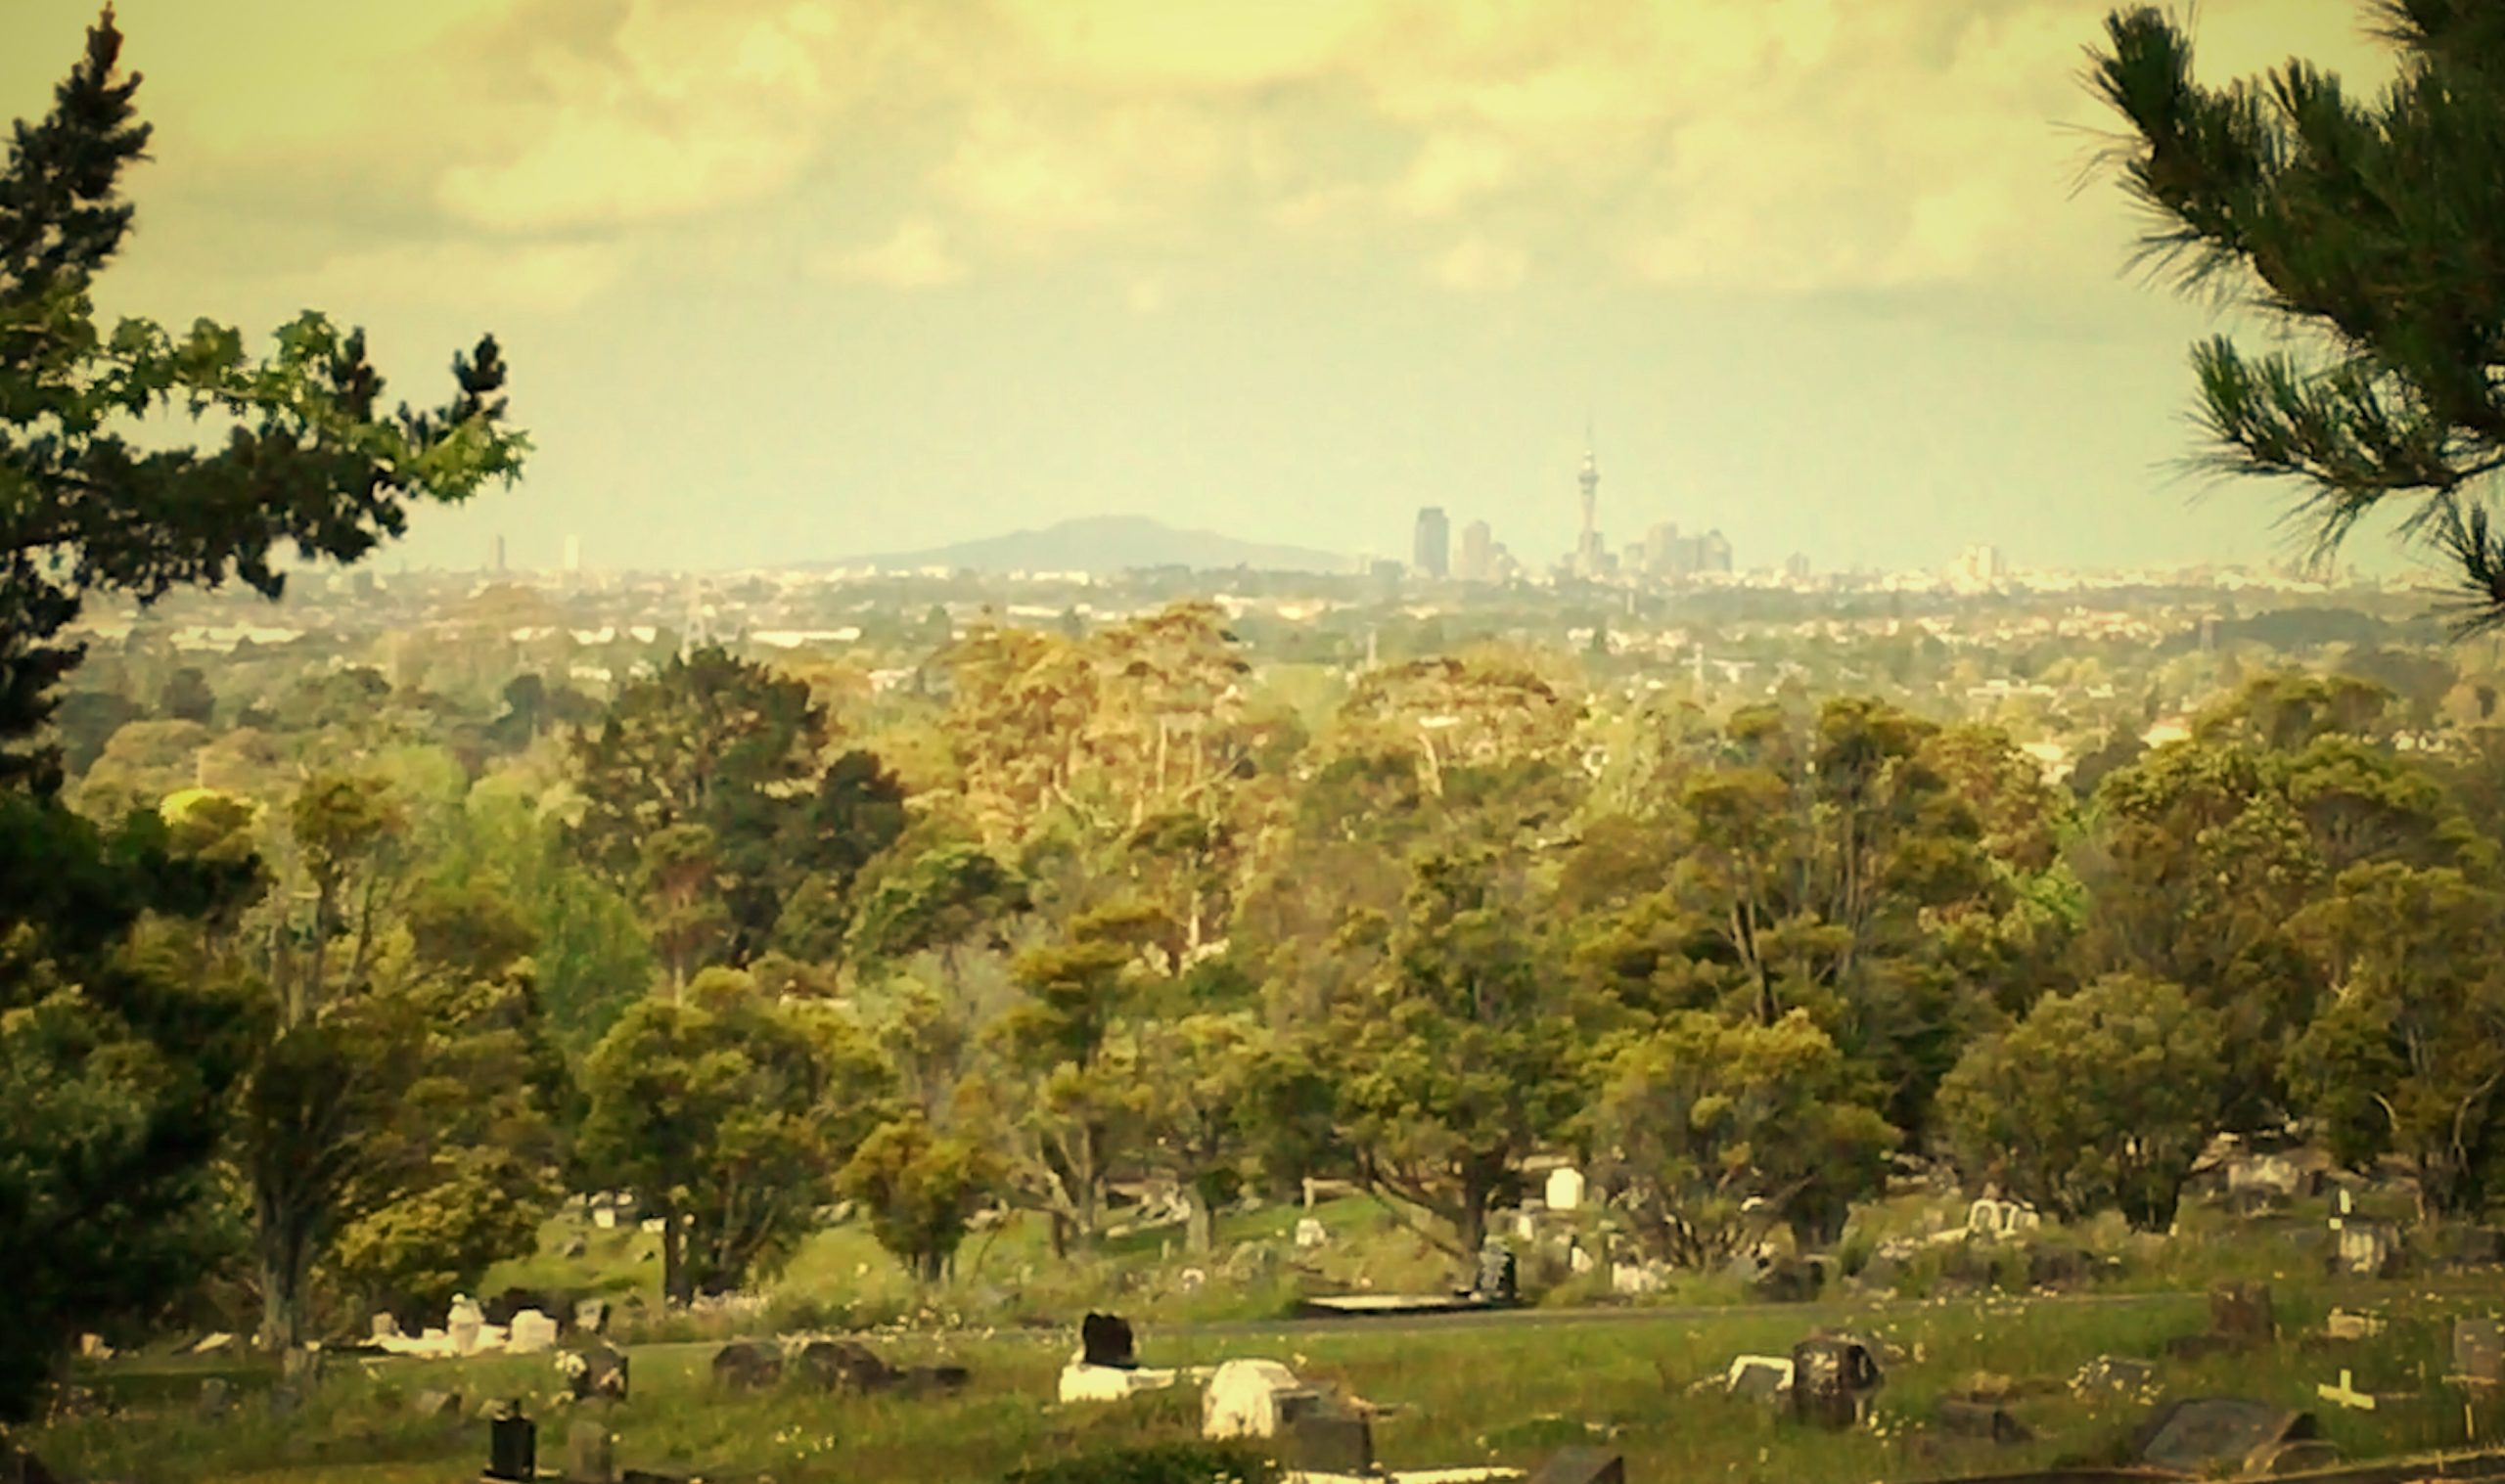 Auckland City from Waikemete Cemetry